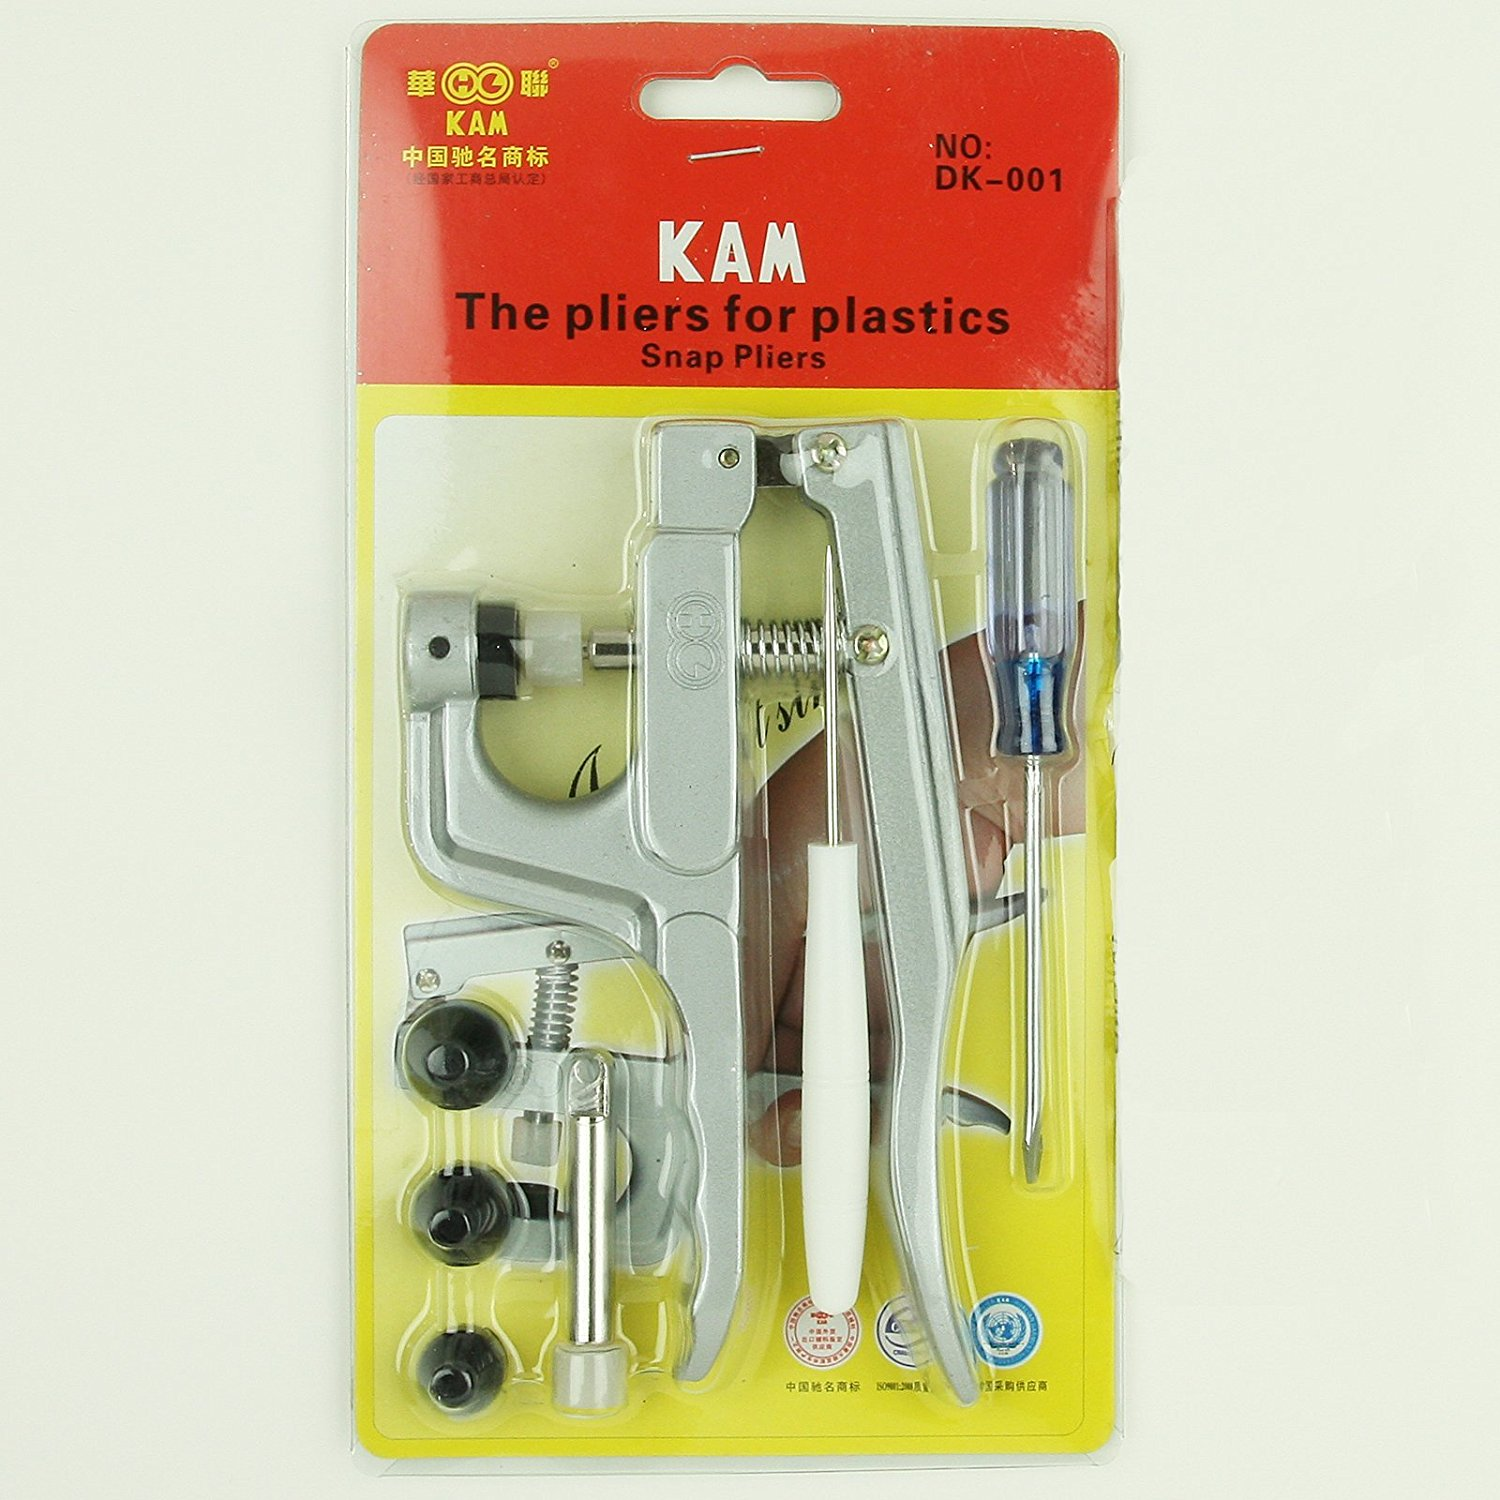 KAM Snap Press Plier Hand Setter Tool and 4 Dies Sizes (T3, T5, T8A and T8B) for KAM Plastic/Resin Snaps use to make Cloth Diapers/Bibs/Mama Pads/PUL and More